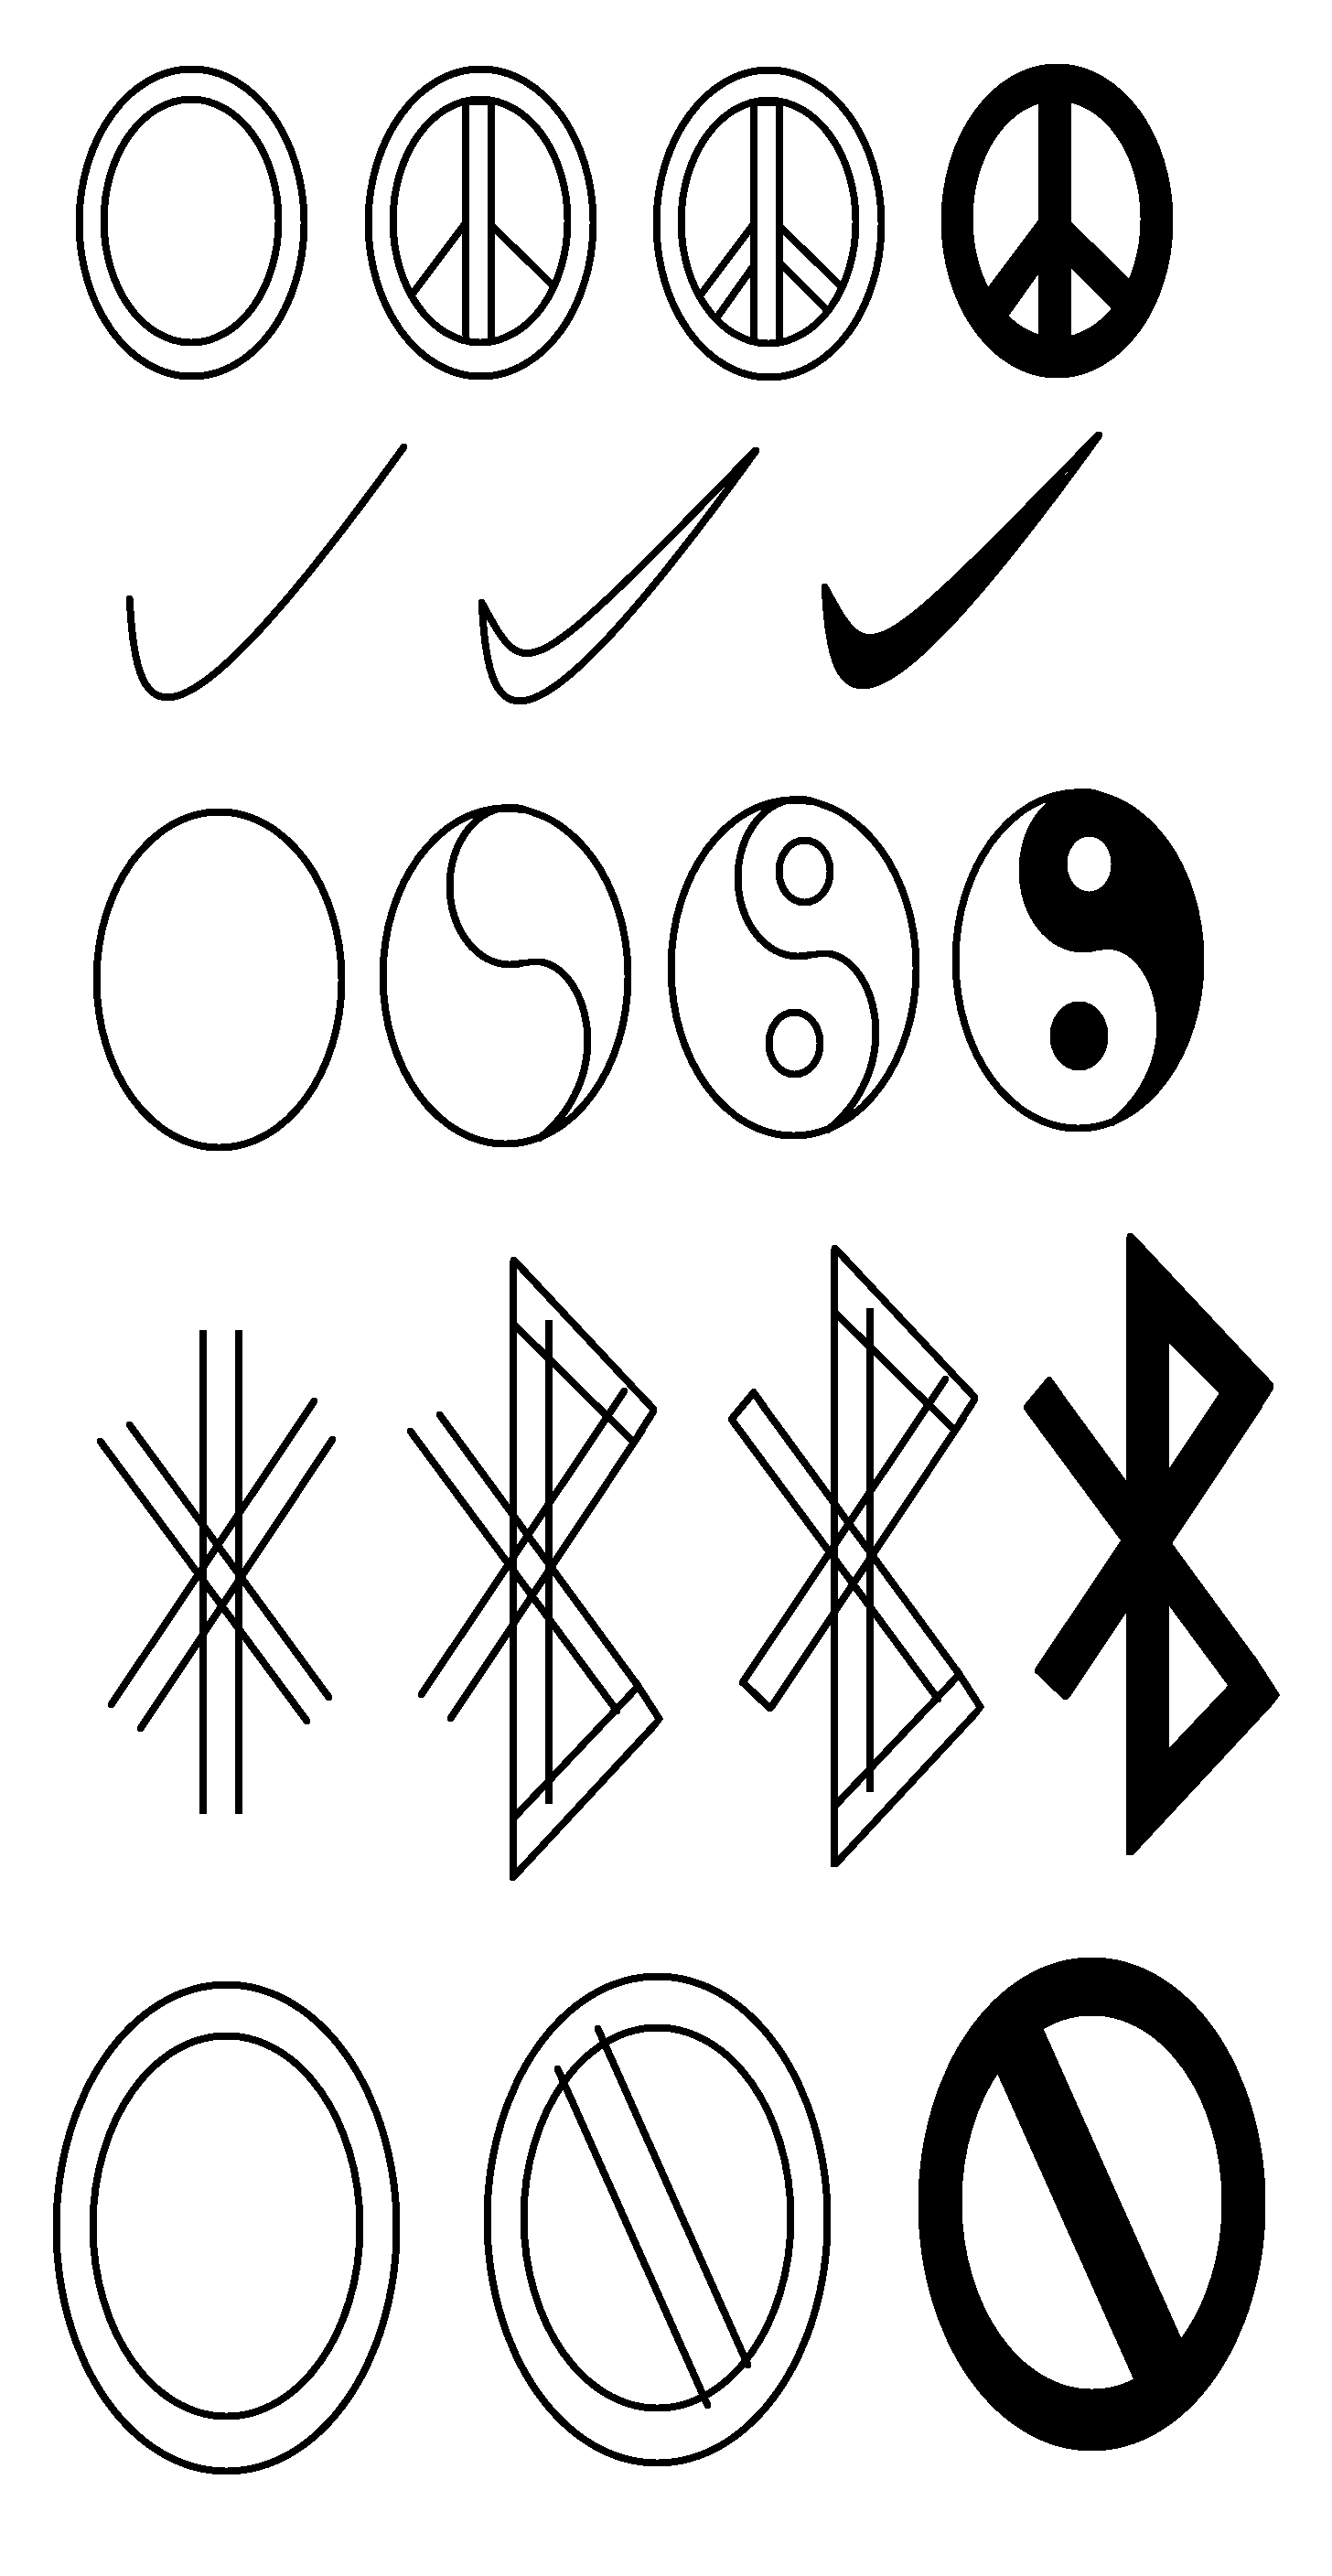 Symbols Tutorial Part 1 Doodle Art Journals Symbols Drawings